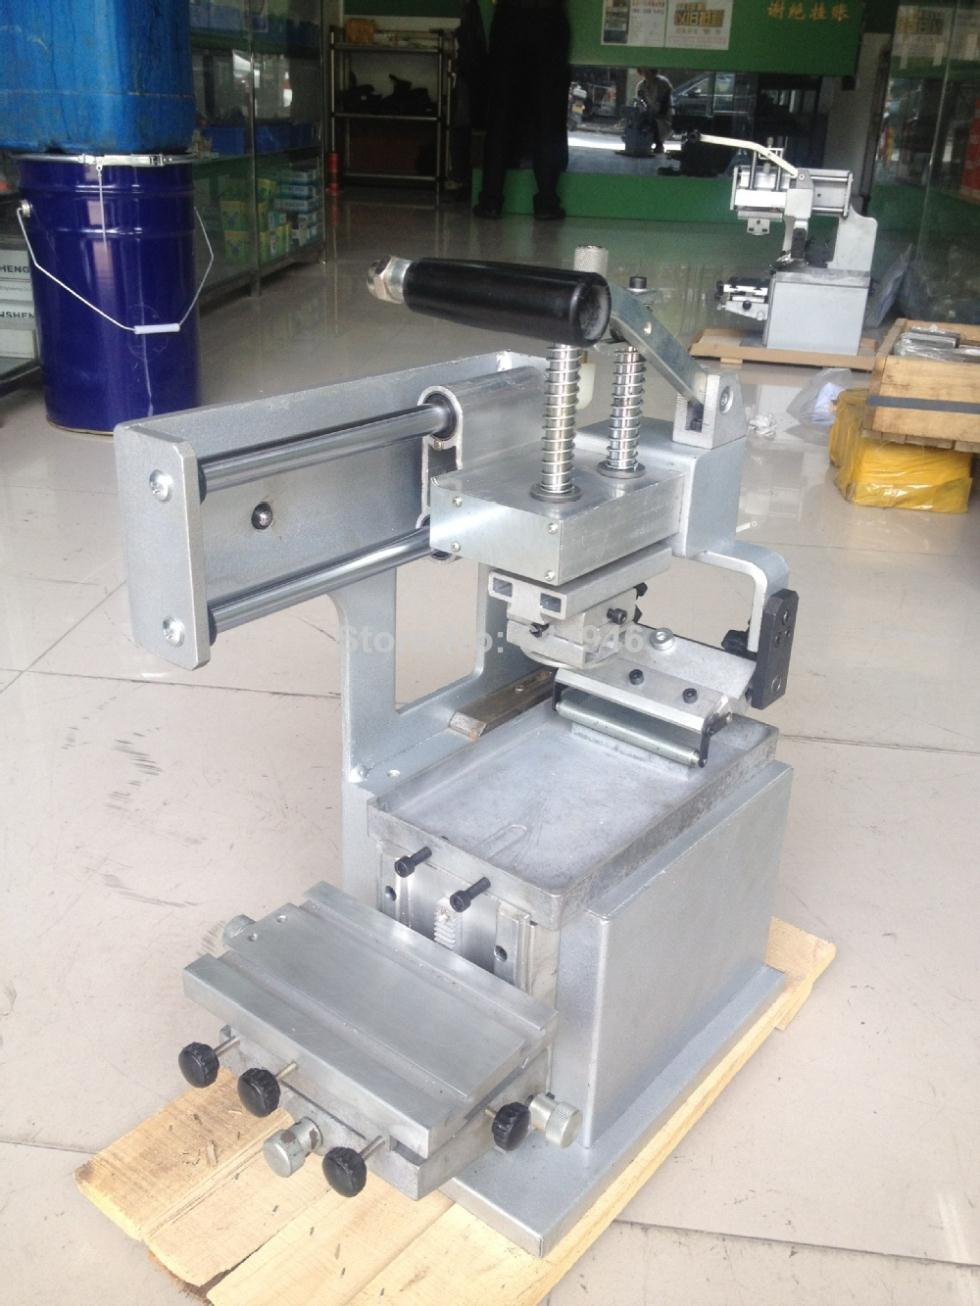 free shipping discount with gift 4 color 2 station silk screen printing machine tshirt printer press equipment carousel squeegee Manual Pad Printing Press Machine Company Logo Printer Equipment Single Color Oil Stamping  Design Die Board Pad Head